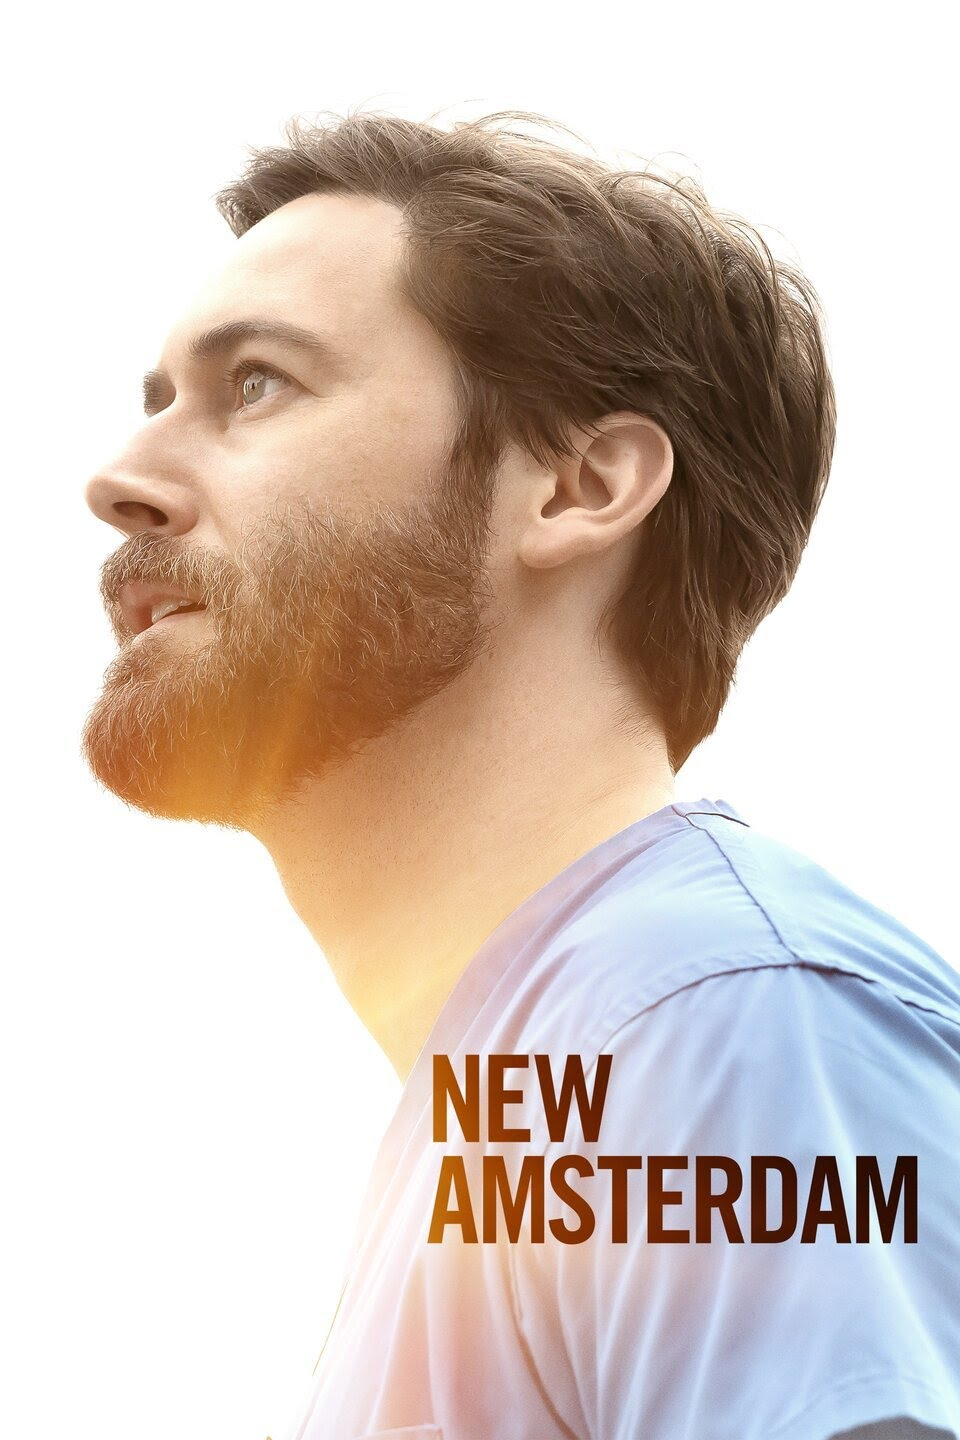 New Amsterdam - Season 3 Episode 7 - The Legend of Howie Cournemeyer